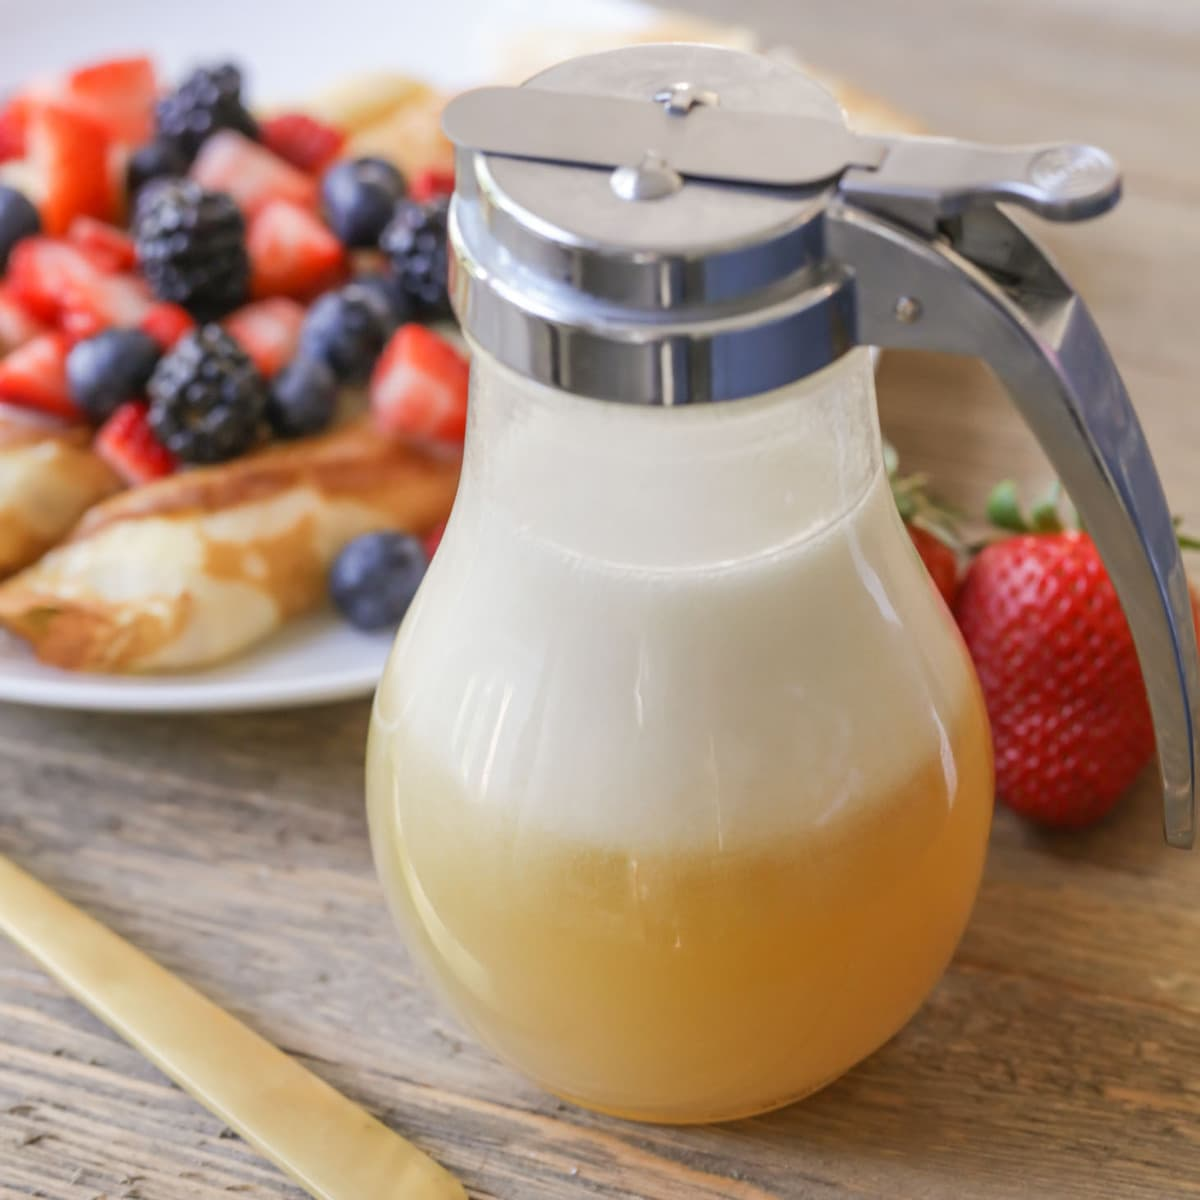 Buttermilk syrup in a syrup dispenser